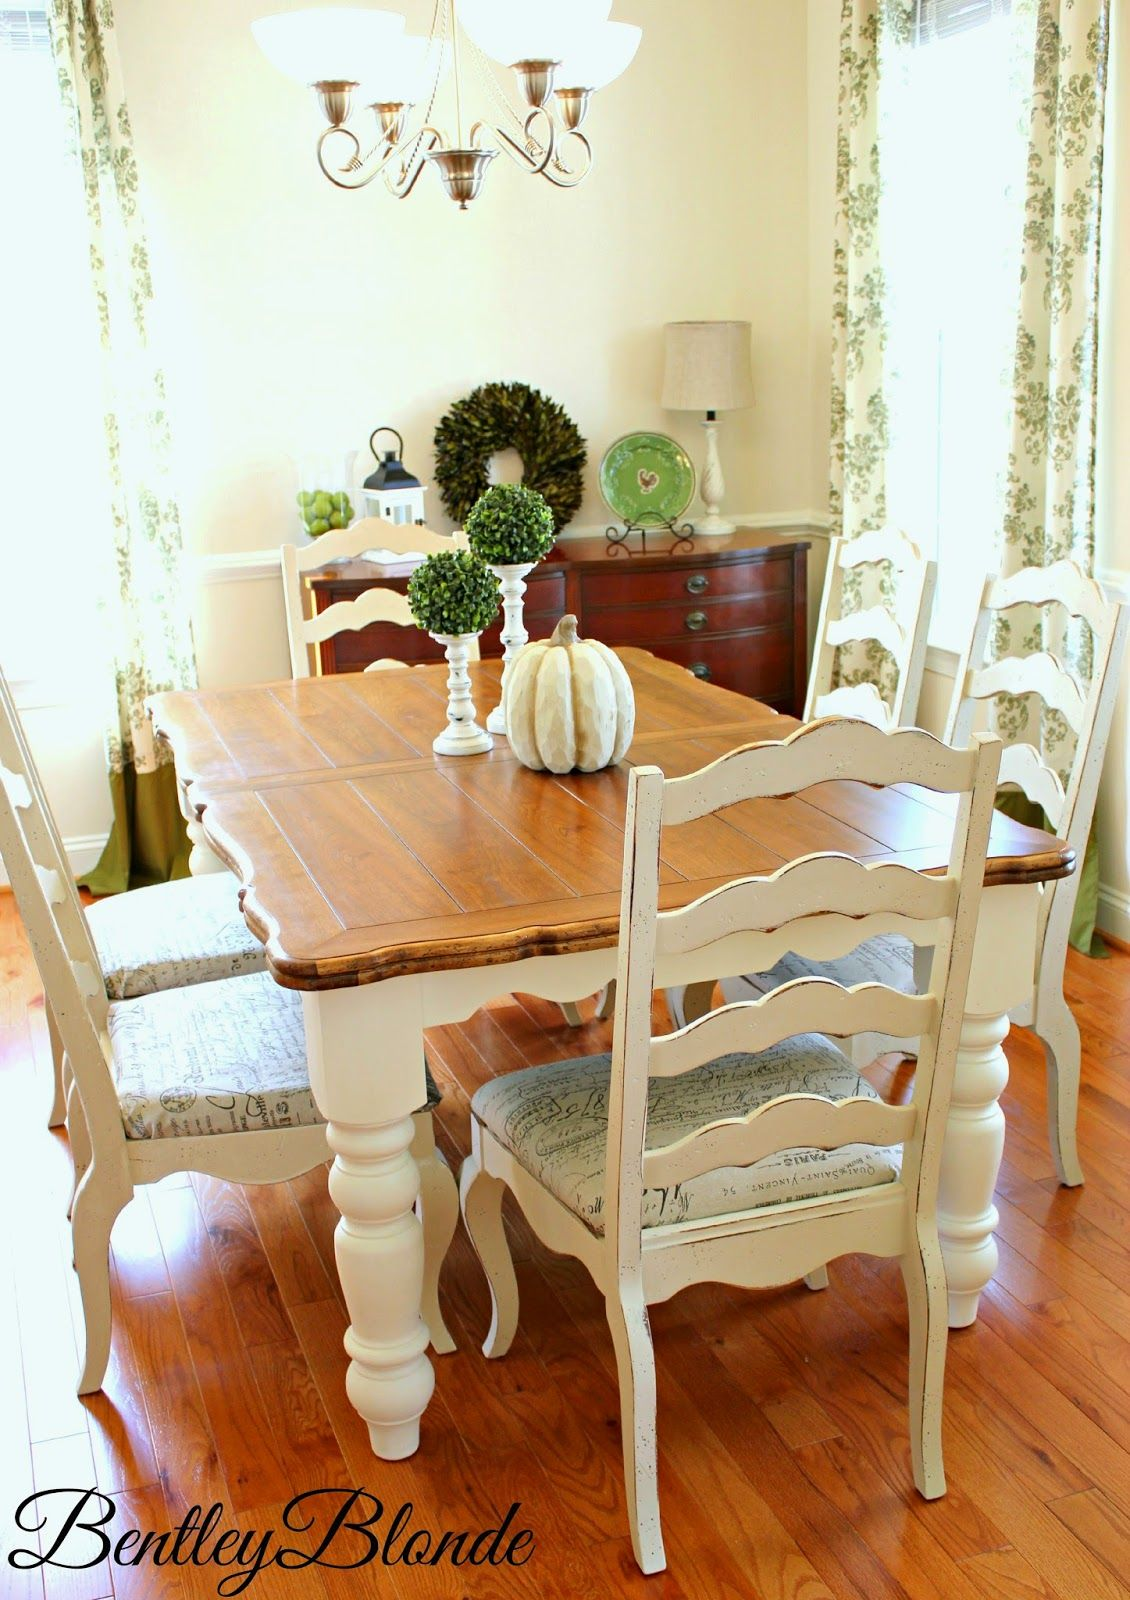 50 ways to re-imagine your dream dining spot   diy farmhouse table